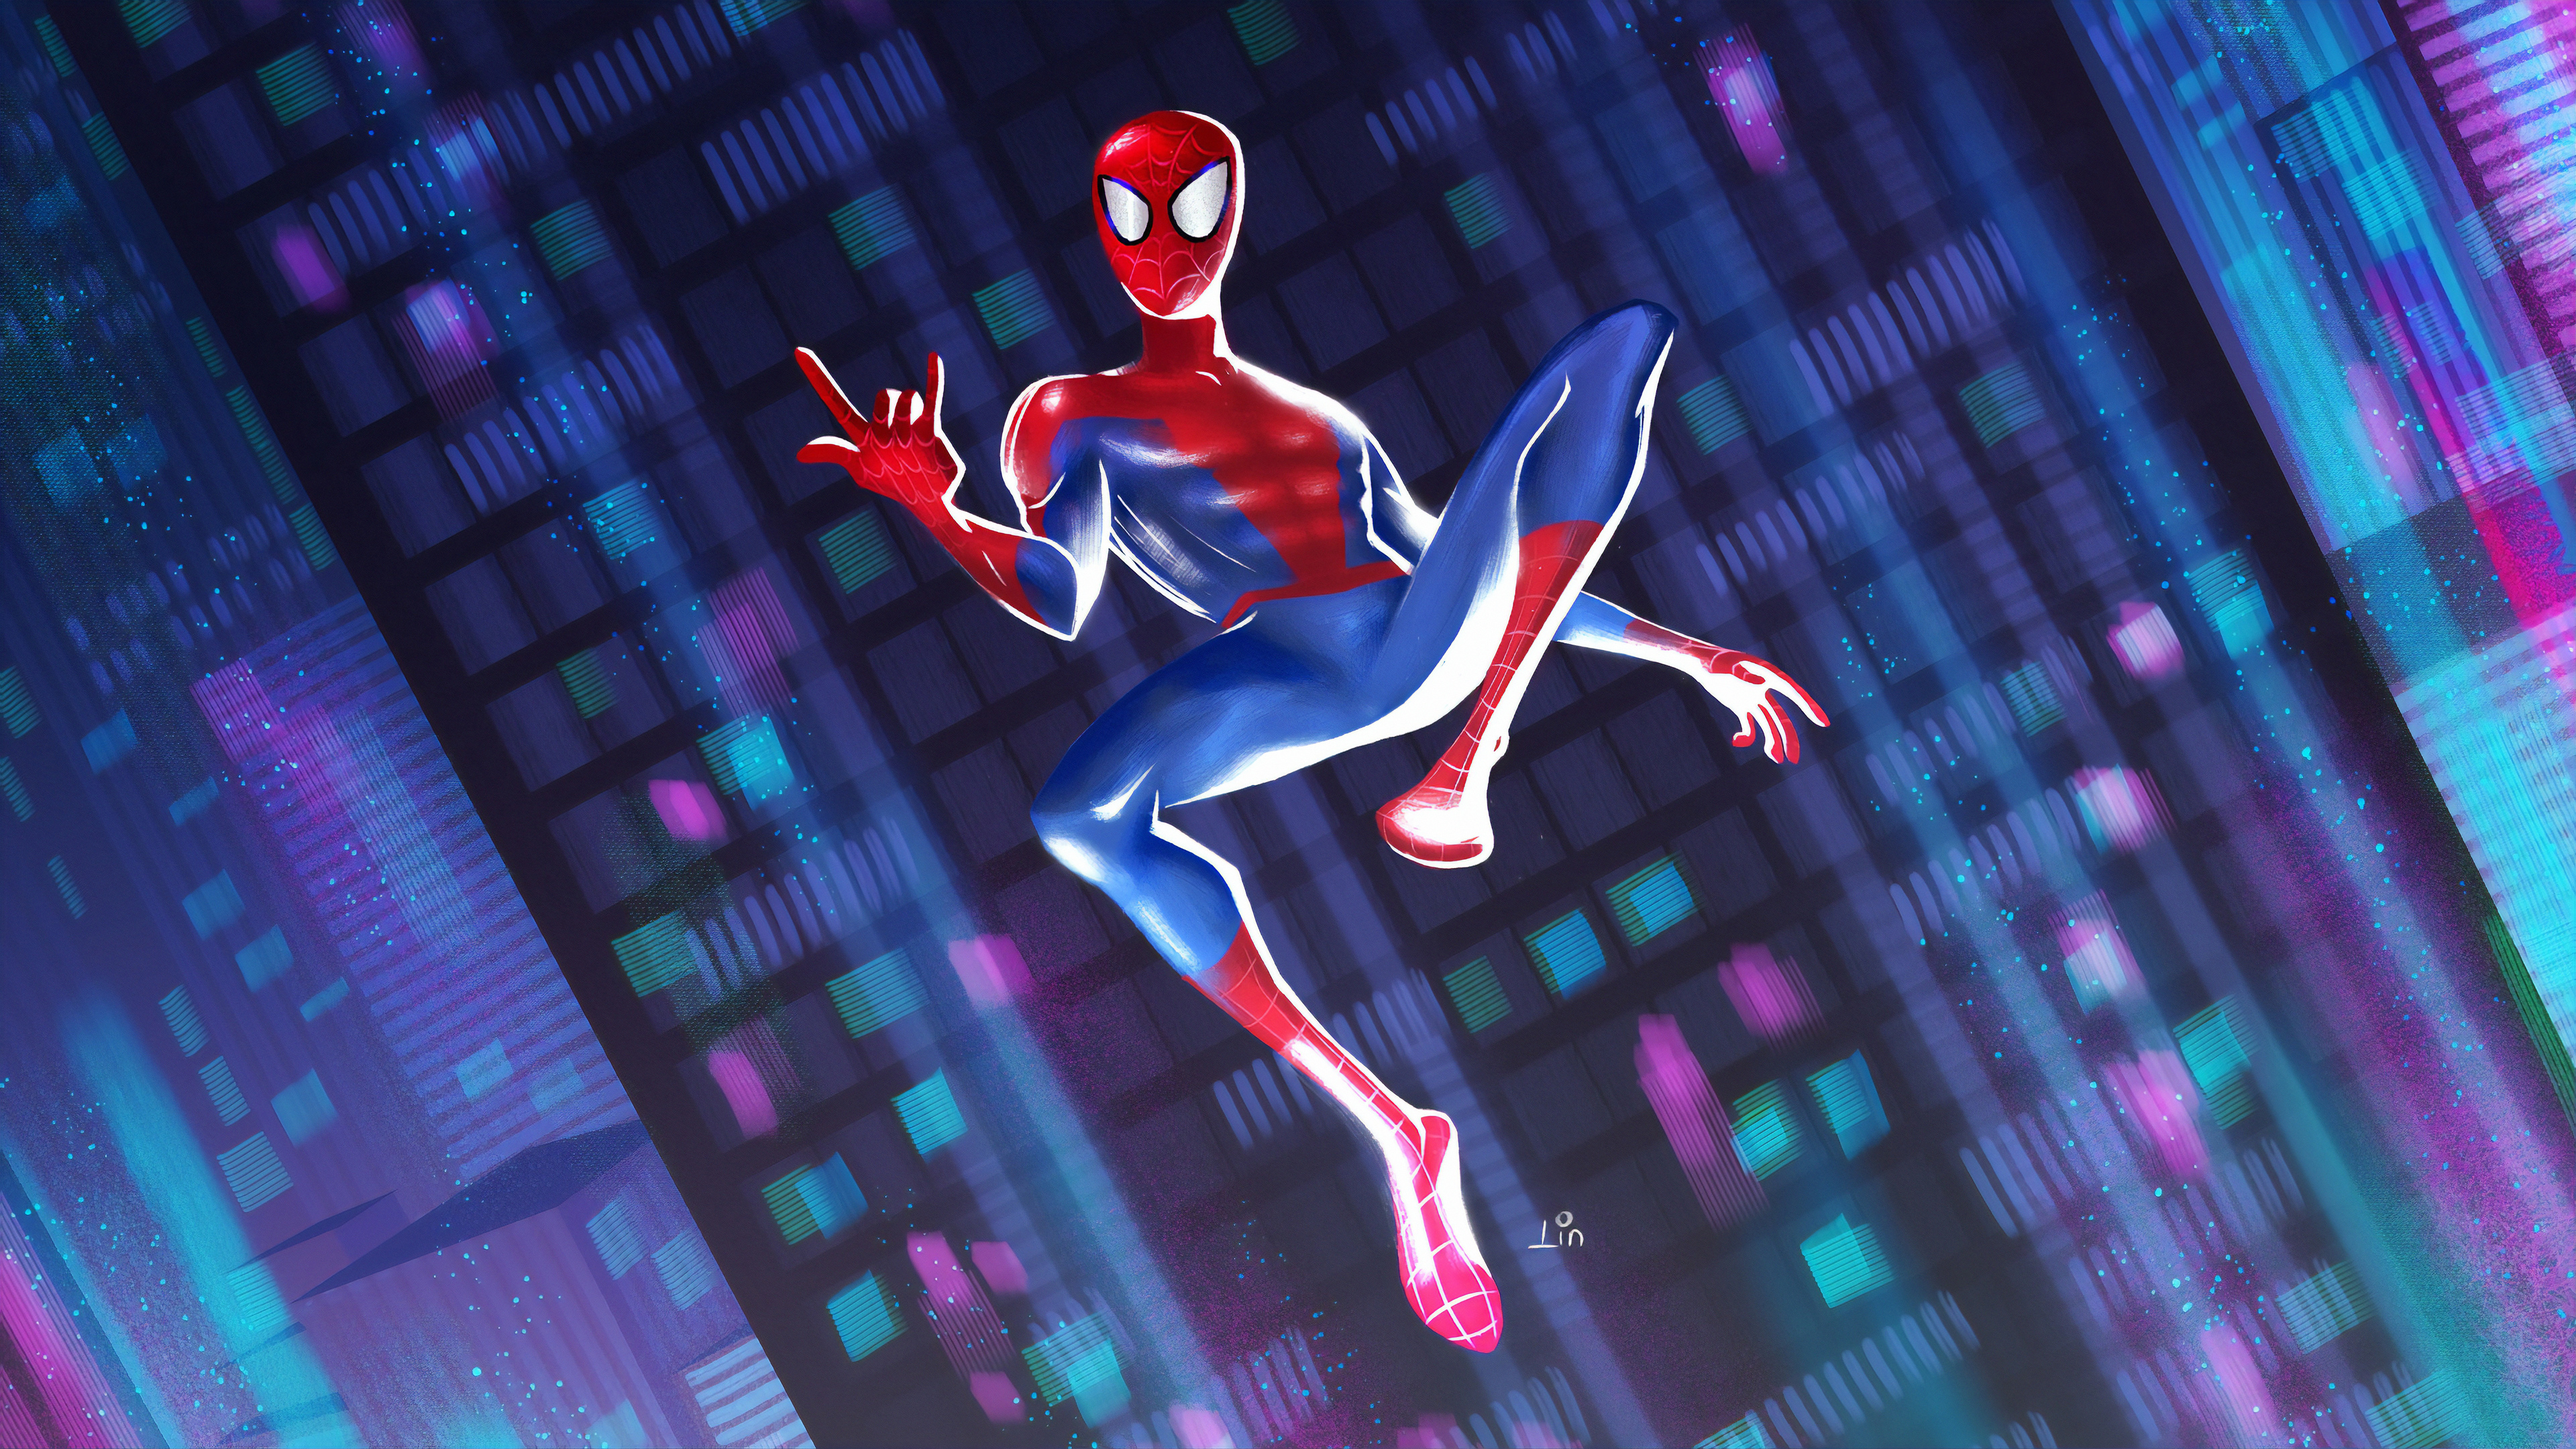 spider 1562106140 - Spider - superheroes wallpapers, spiderman wallpapers, hd-wallpapers, digital art wallpapers, artwork wallpapers, artist wallpapers, 4k-wallpapers